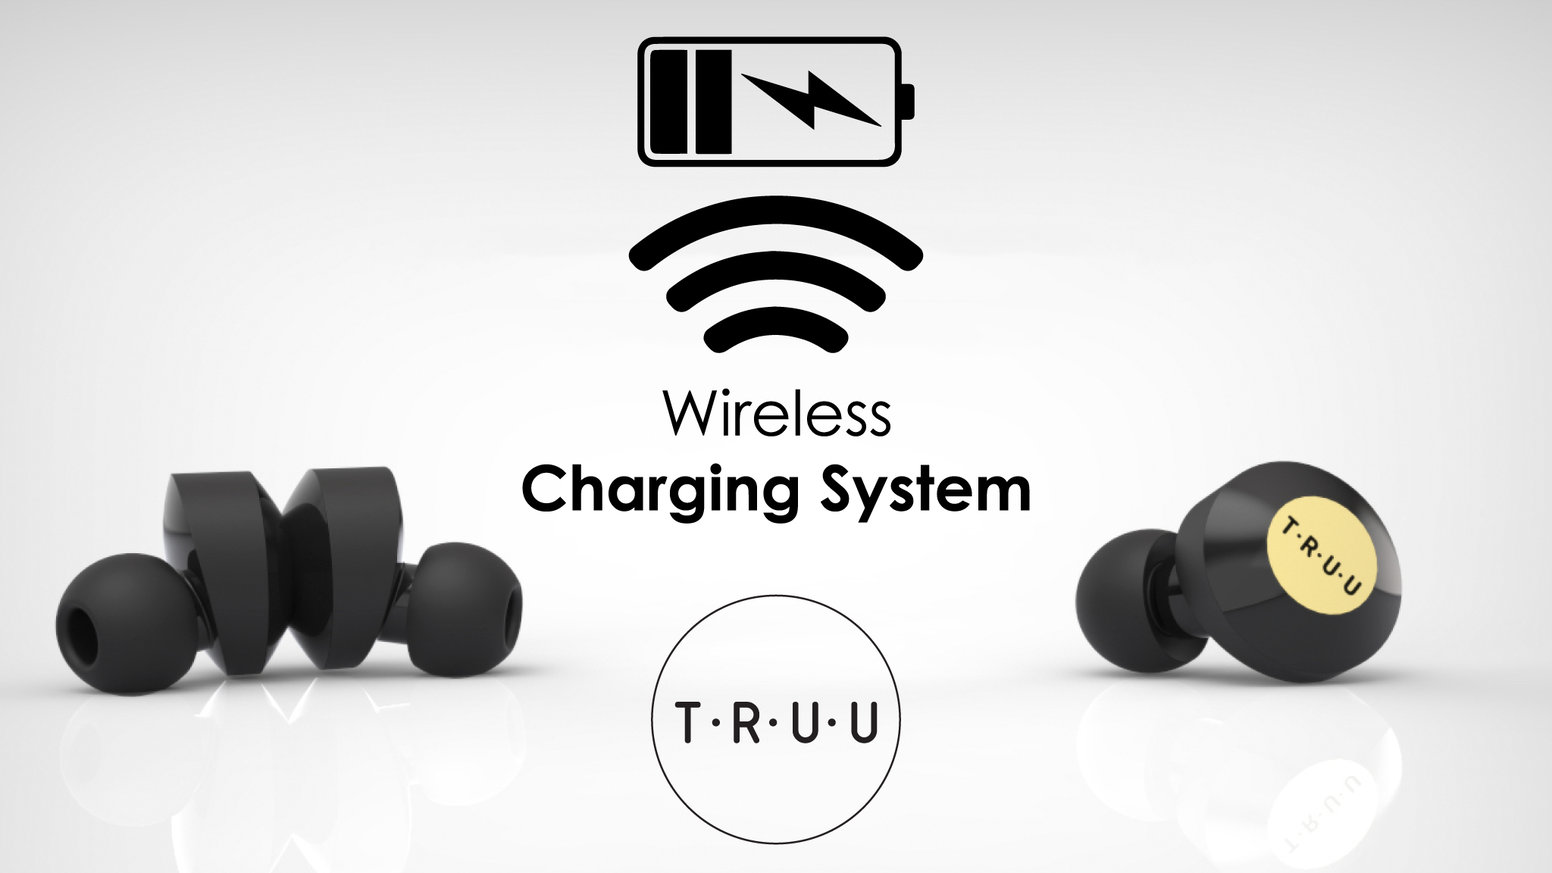 Truu - True wireless earbuds with wireless charging. No more charging cords or cases, just pure freedom.